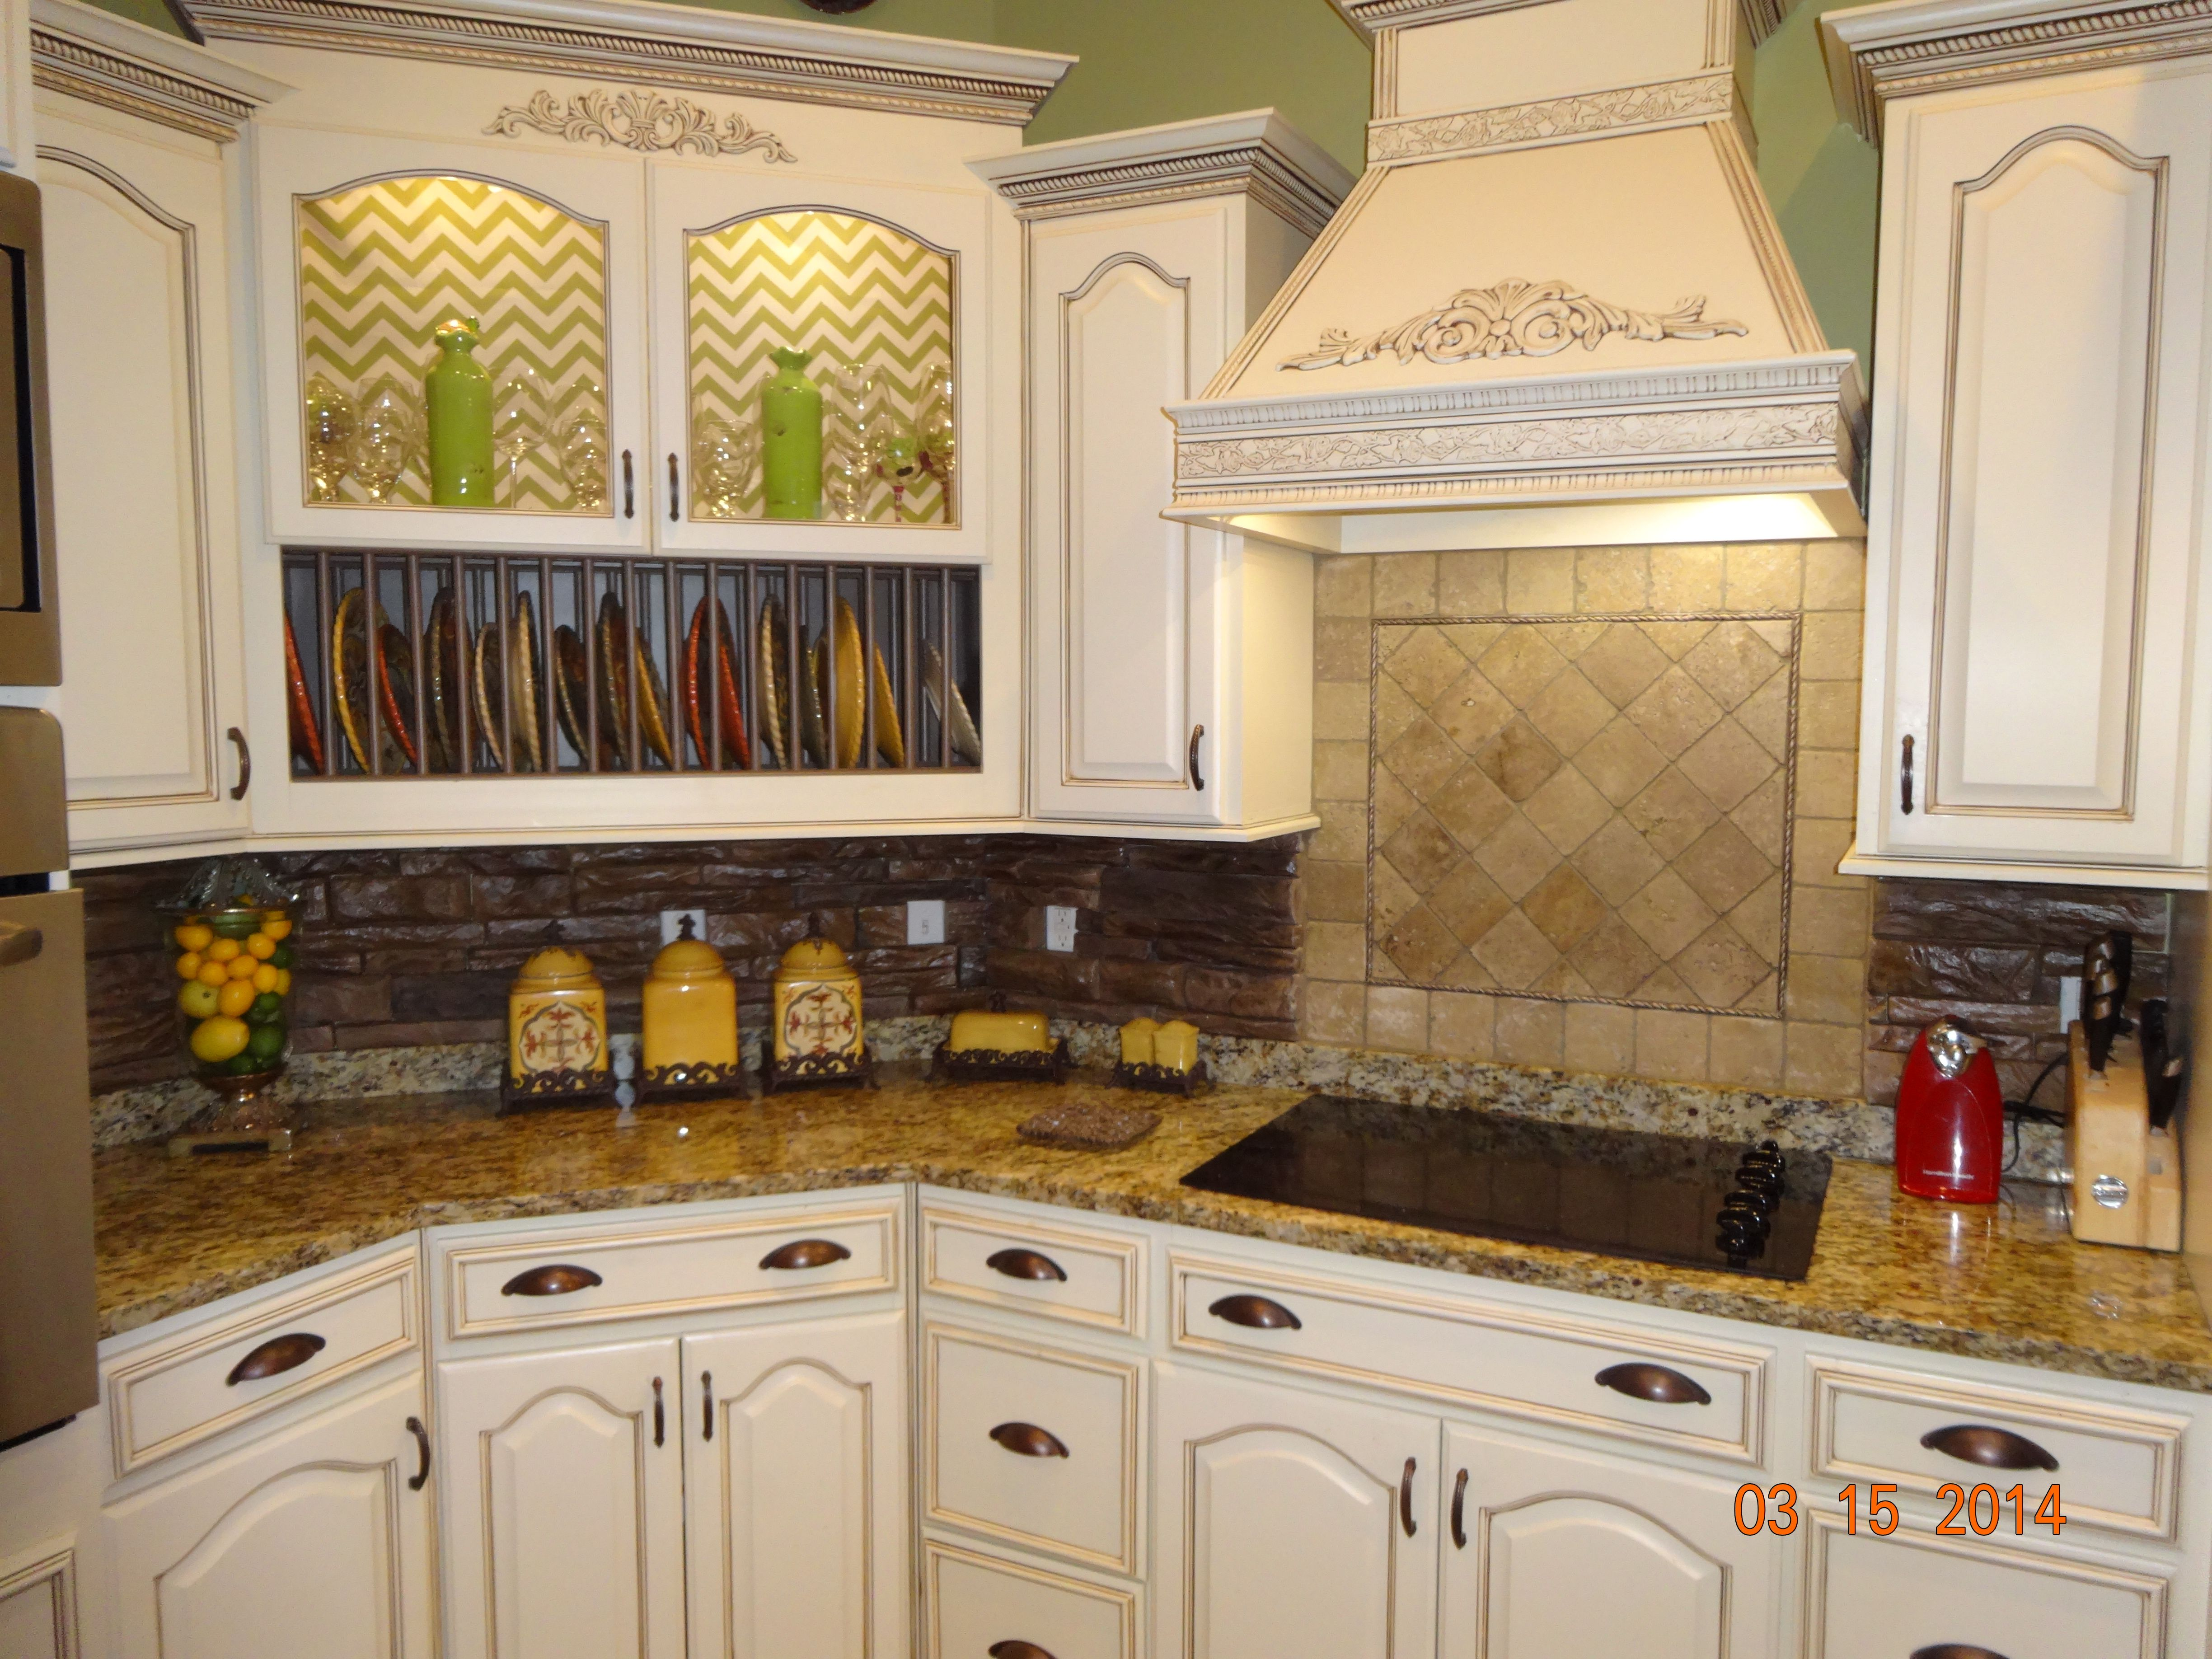 kitchen backsplash home pinterest diy kitchen backsplash ideas pinterest 18 with diy kitchen